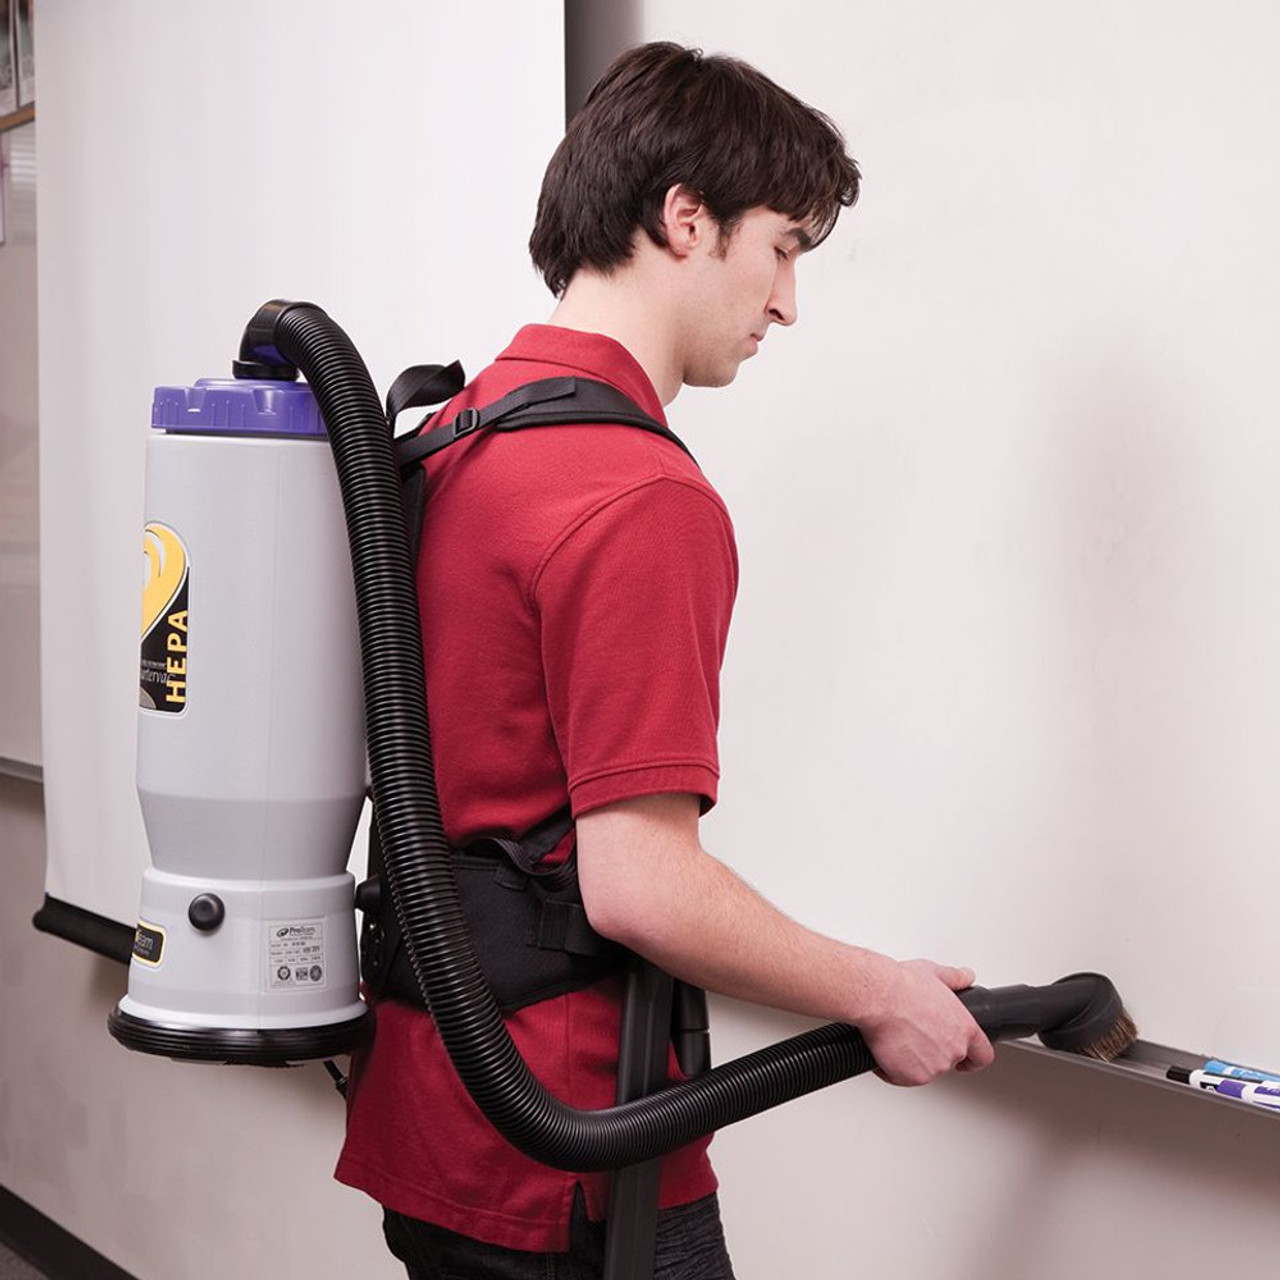 With this vacuum you can easily pick up fine particles like chalk with no worries about blowing dust around the room.